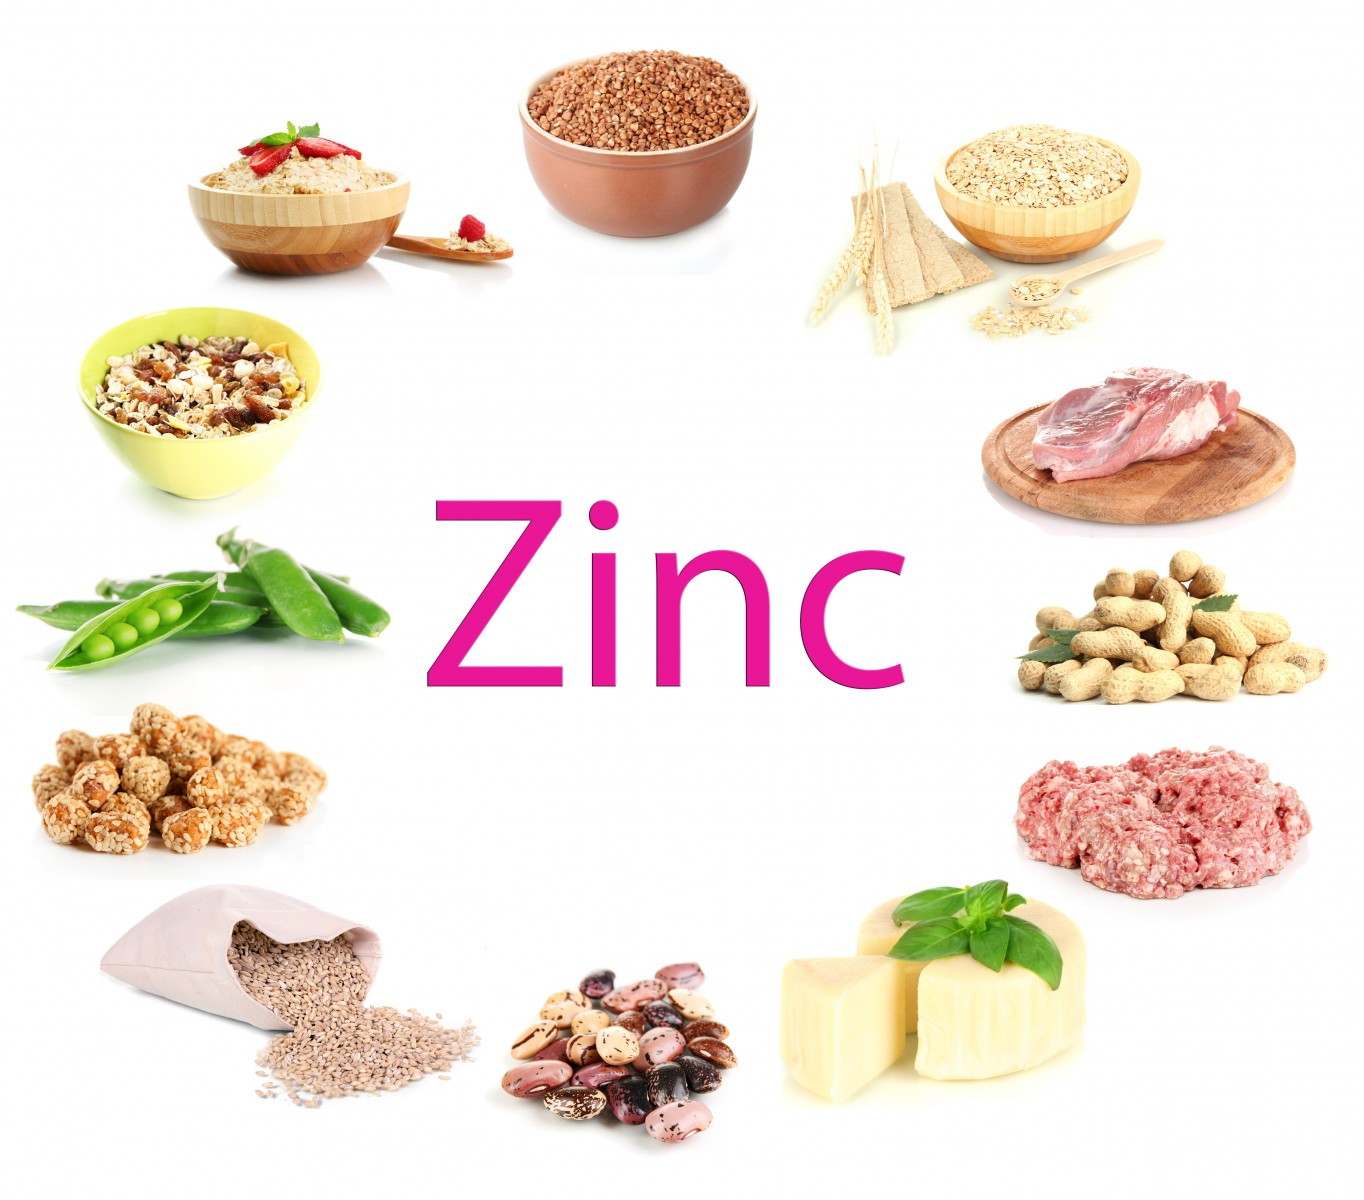 Zinc Deficiency Linked to Lung Cancer Through Hedgehog Signaling